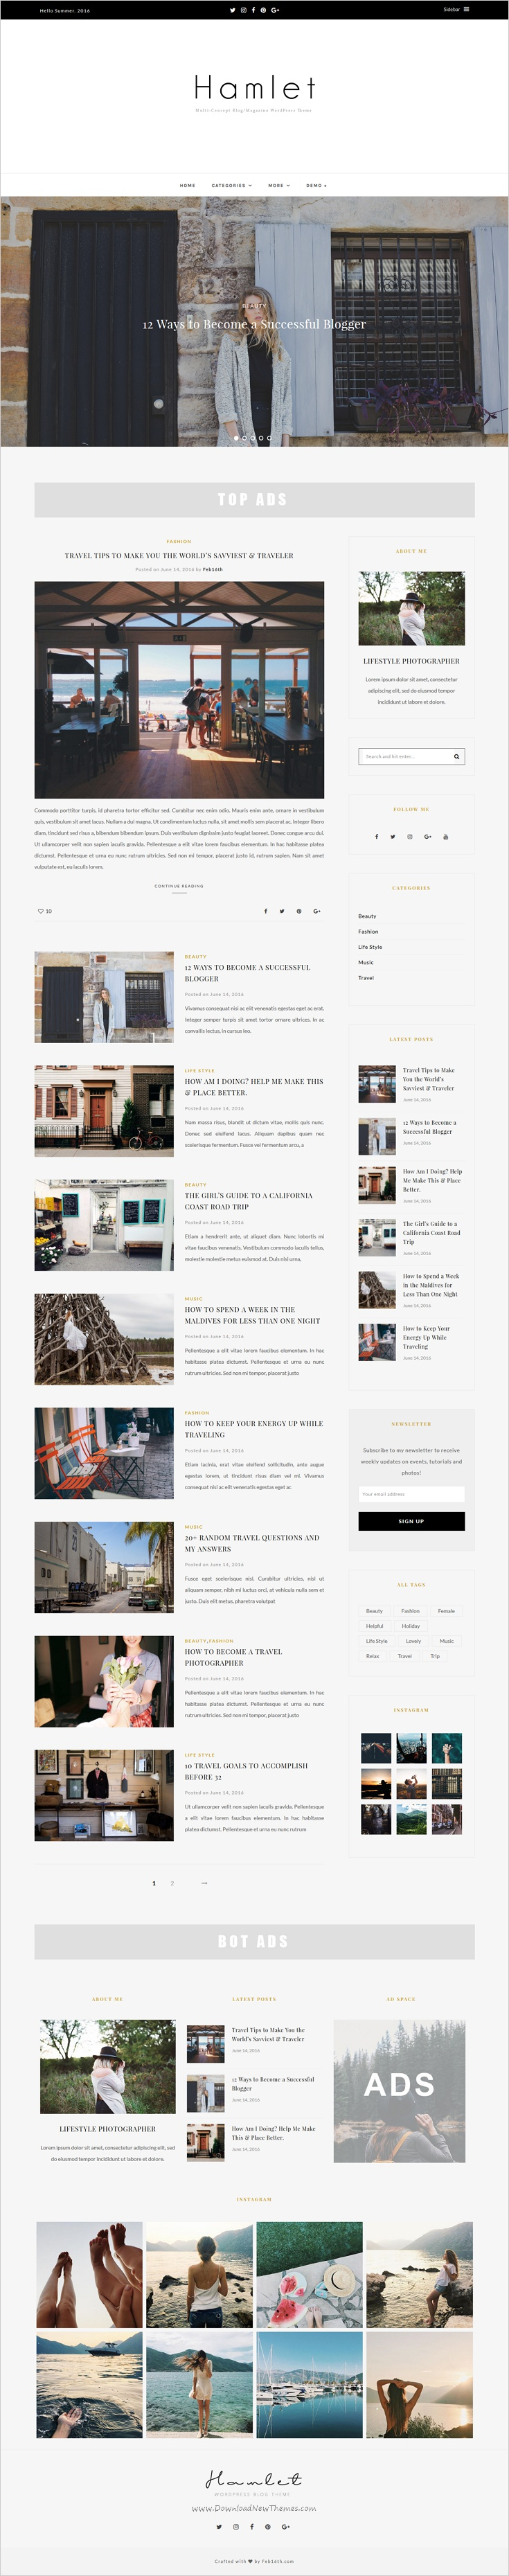 Hamlet is a clean and bold design 3 in 1 #WordPress #theme for multi-concept #Blogging, Magazine & newspaper website download now➯ https://themeforest.net/item/hamlet-multiconcept-blogmagazine-wordpress-theme/16704554?ref=Datasata